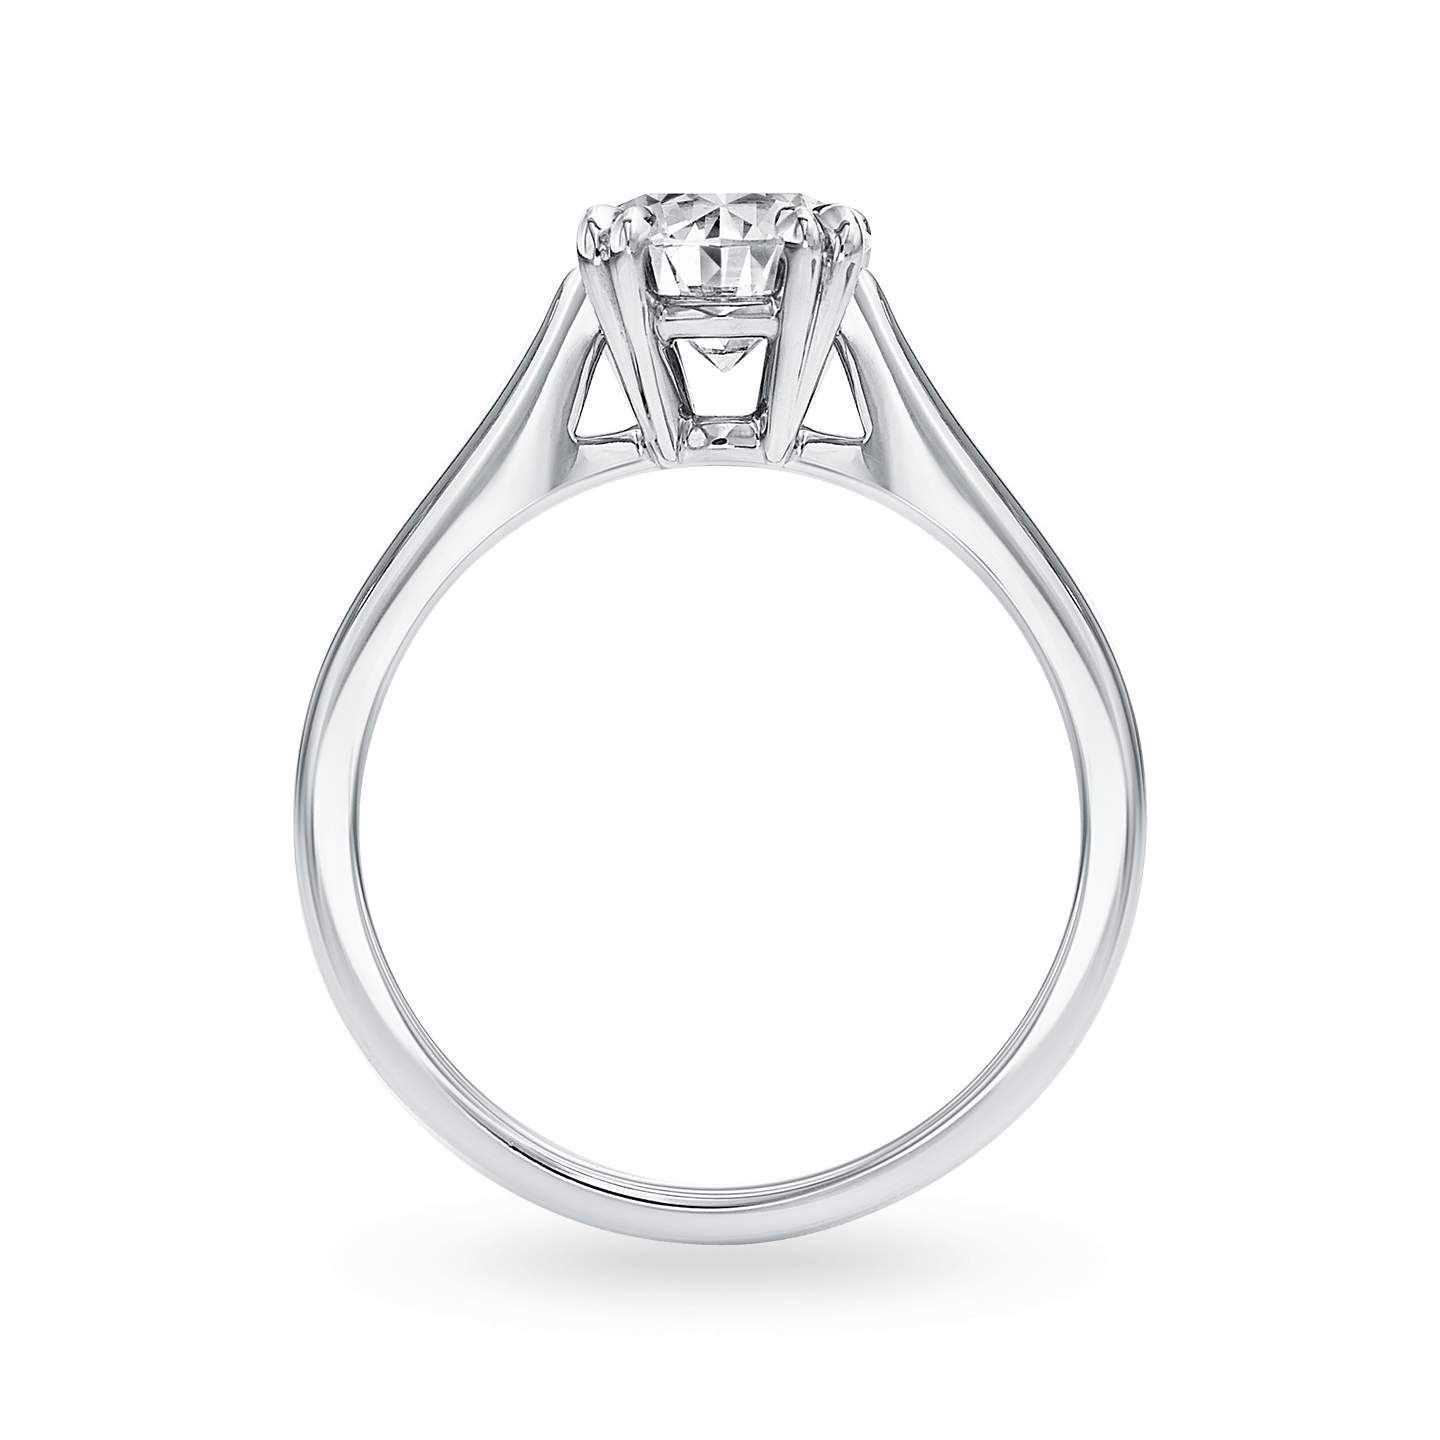 Solitaire Round Brilliant Engagement Ring, Product Image 2